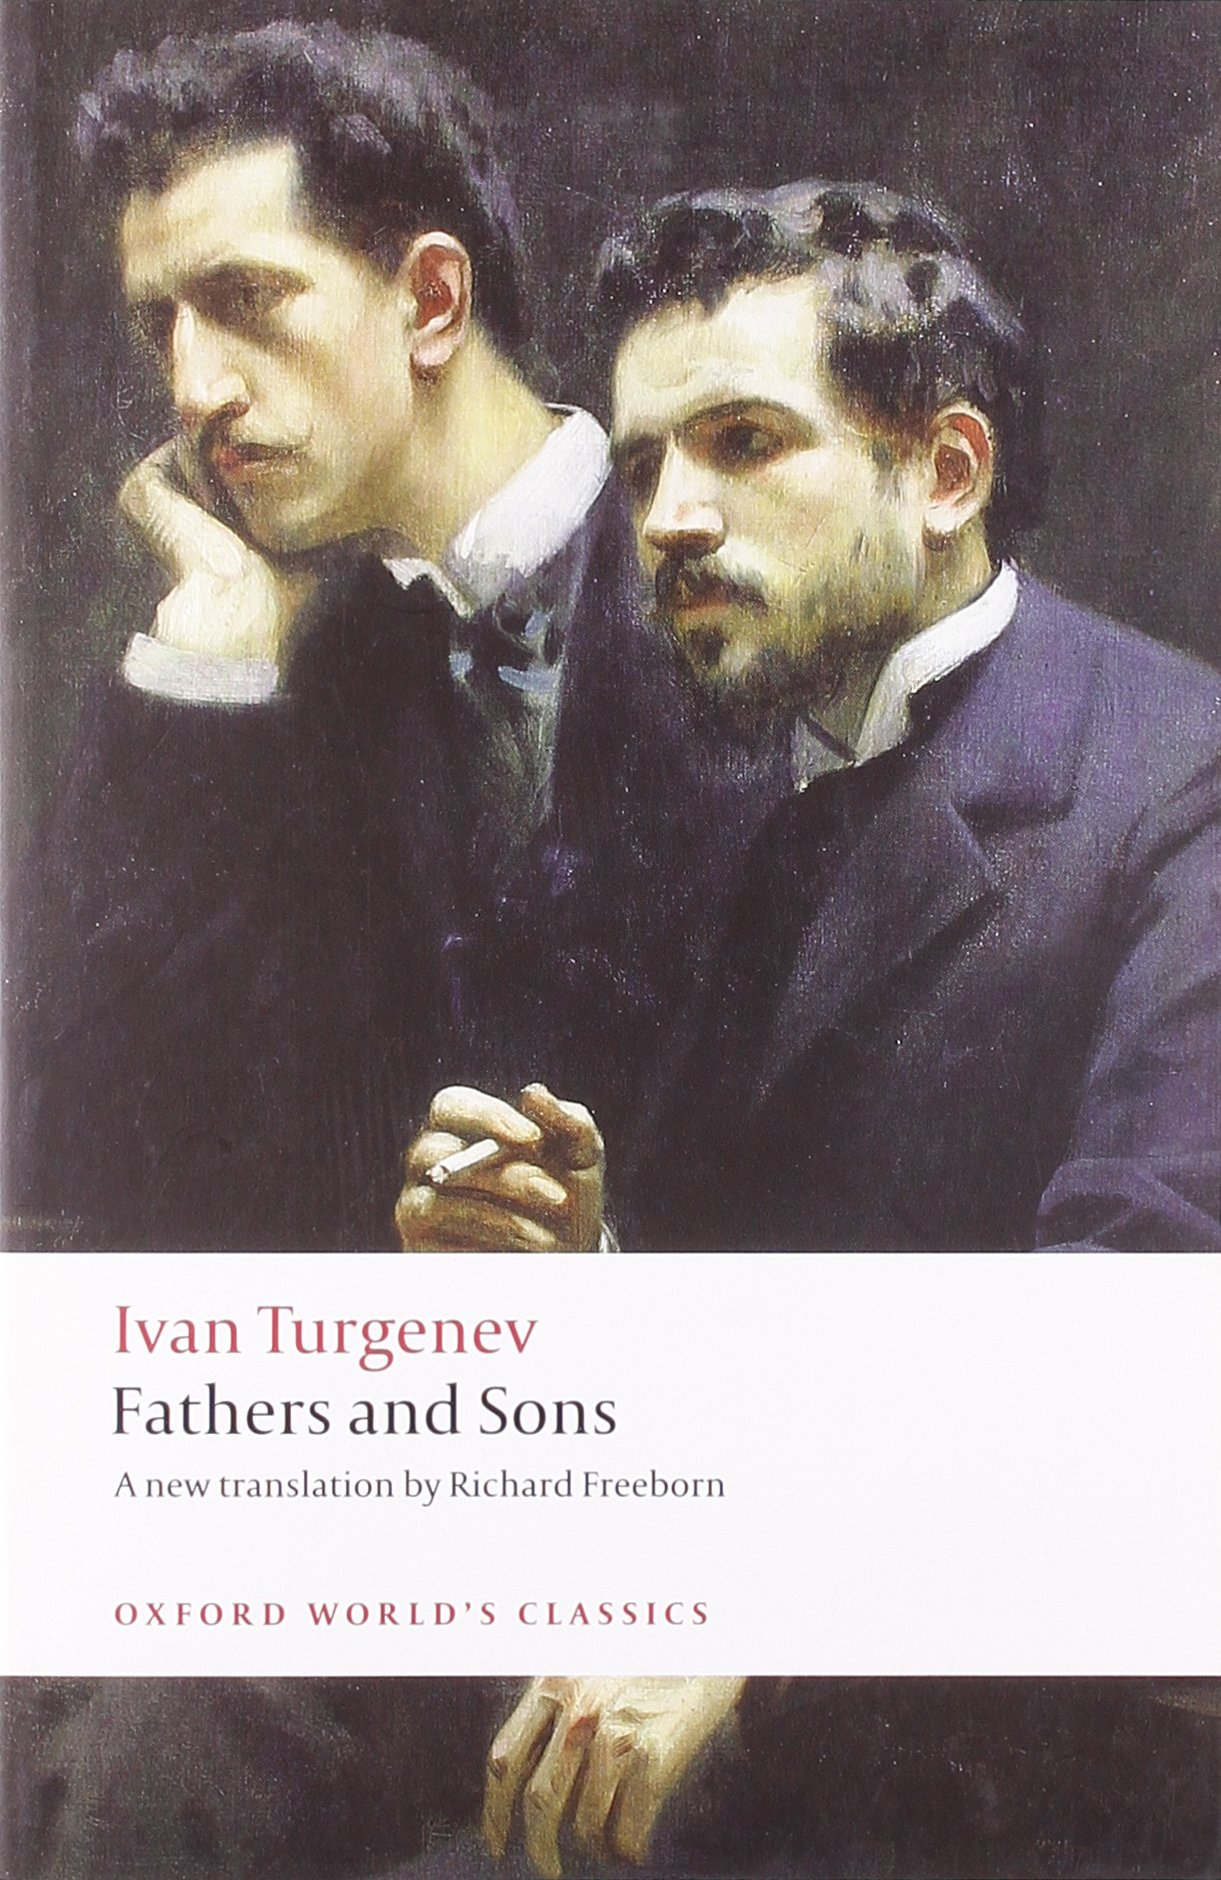 bazarovs nihilism in ivan turgenevs fathers and sons Fathers and sons explores generational conflict in mid-19th century imperial russia turgenev gently mocked the nihilism of his most significant character, the young doctor, bazarov, but he treated the ideas respectfully plz help fathers and son - ivan hey.